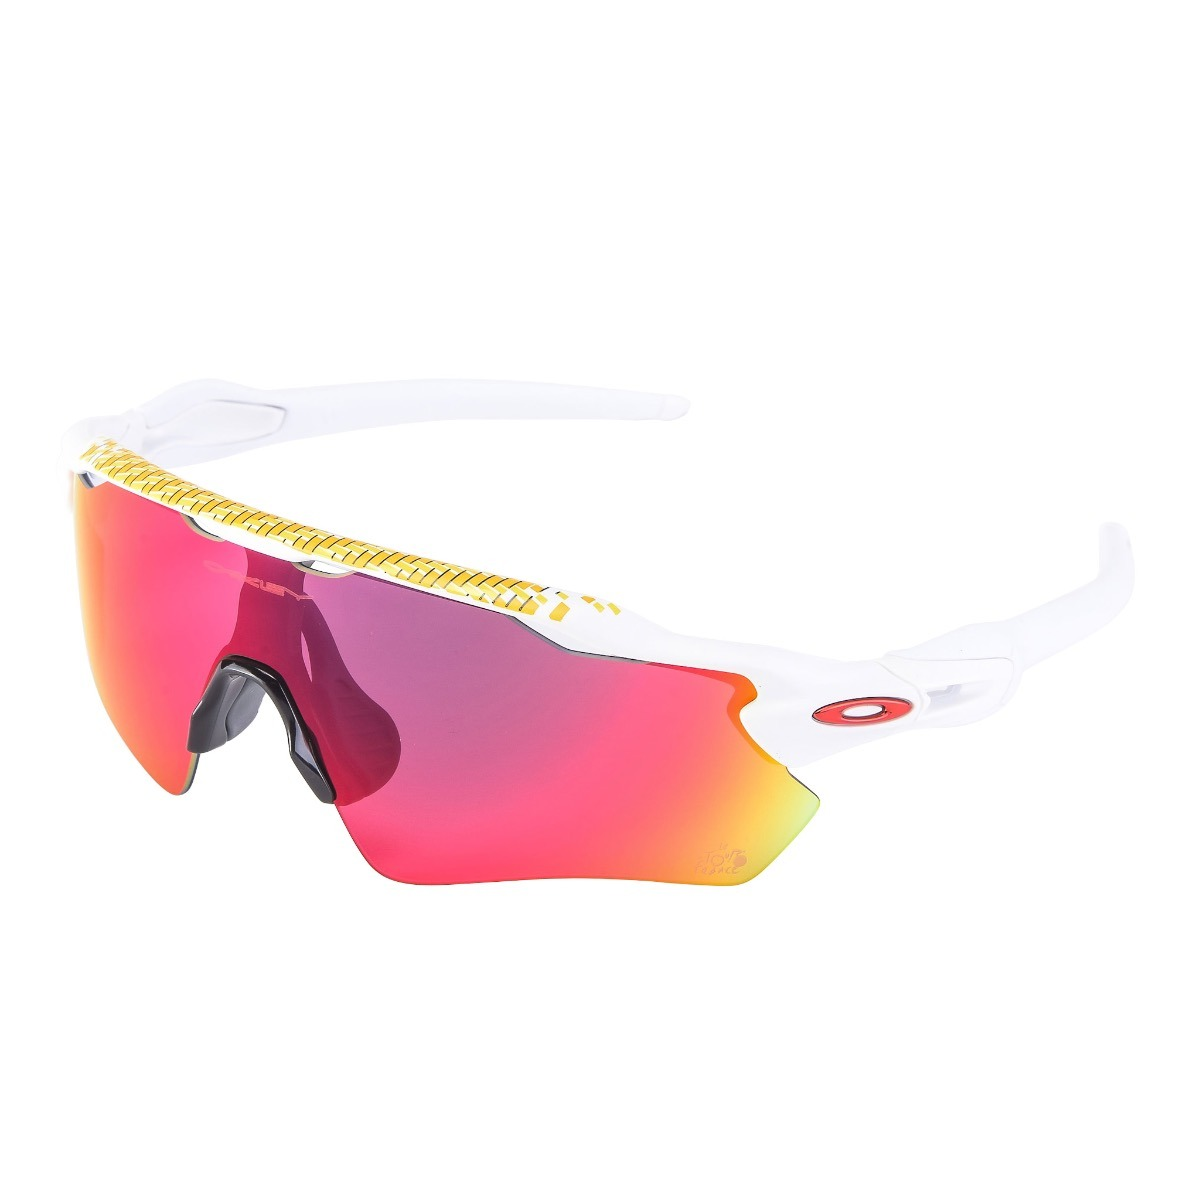 77c0204d20 oakley radar ev path tour de france matte white - prizm road. Cargando zoom.